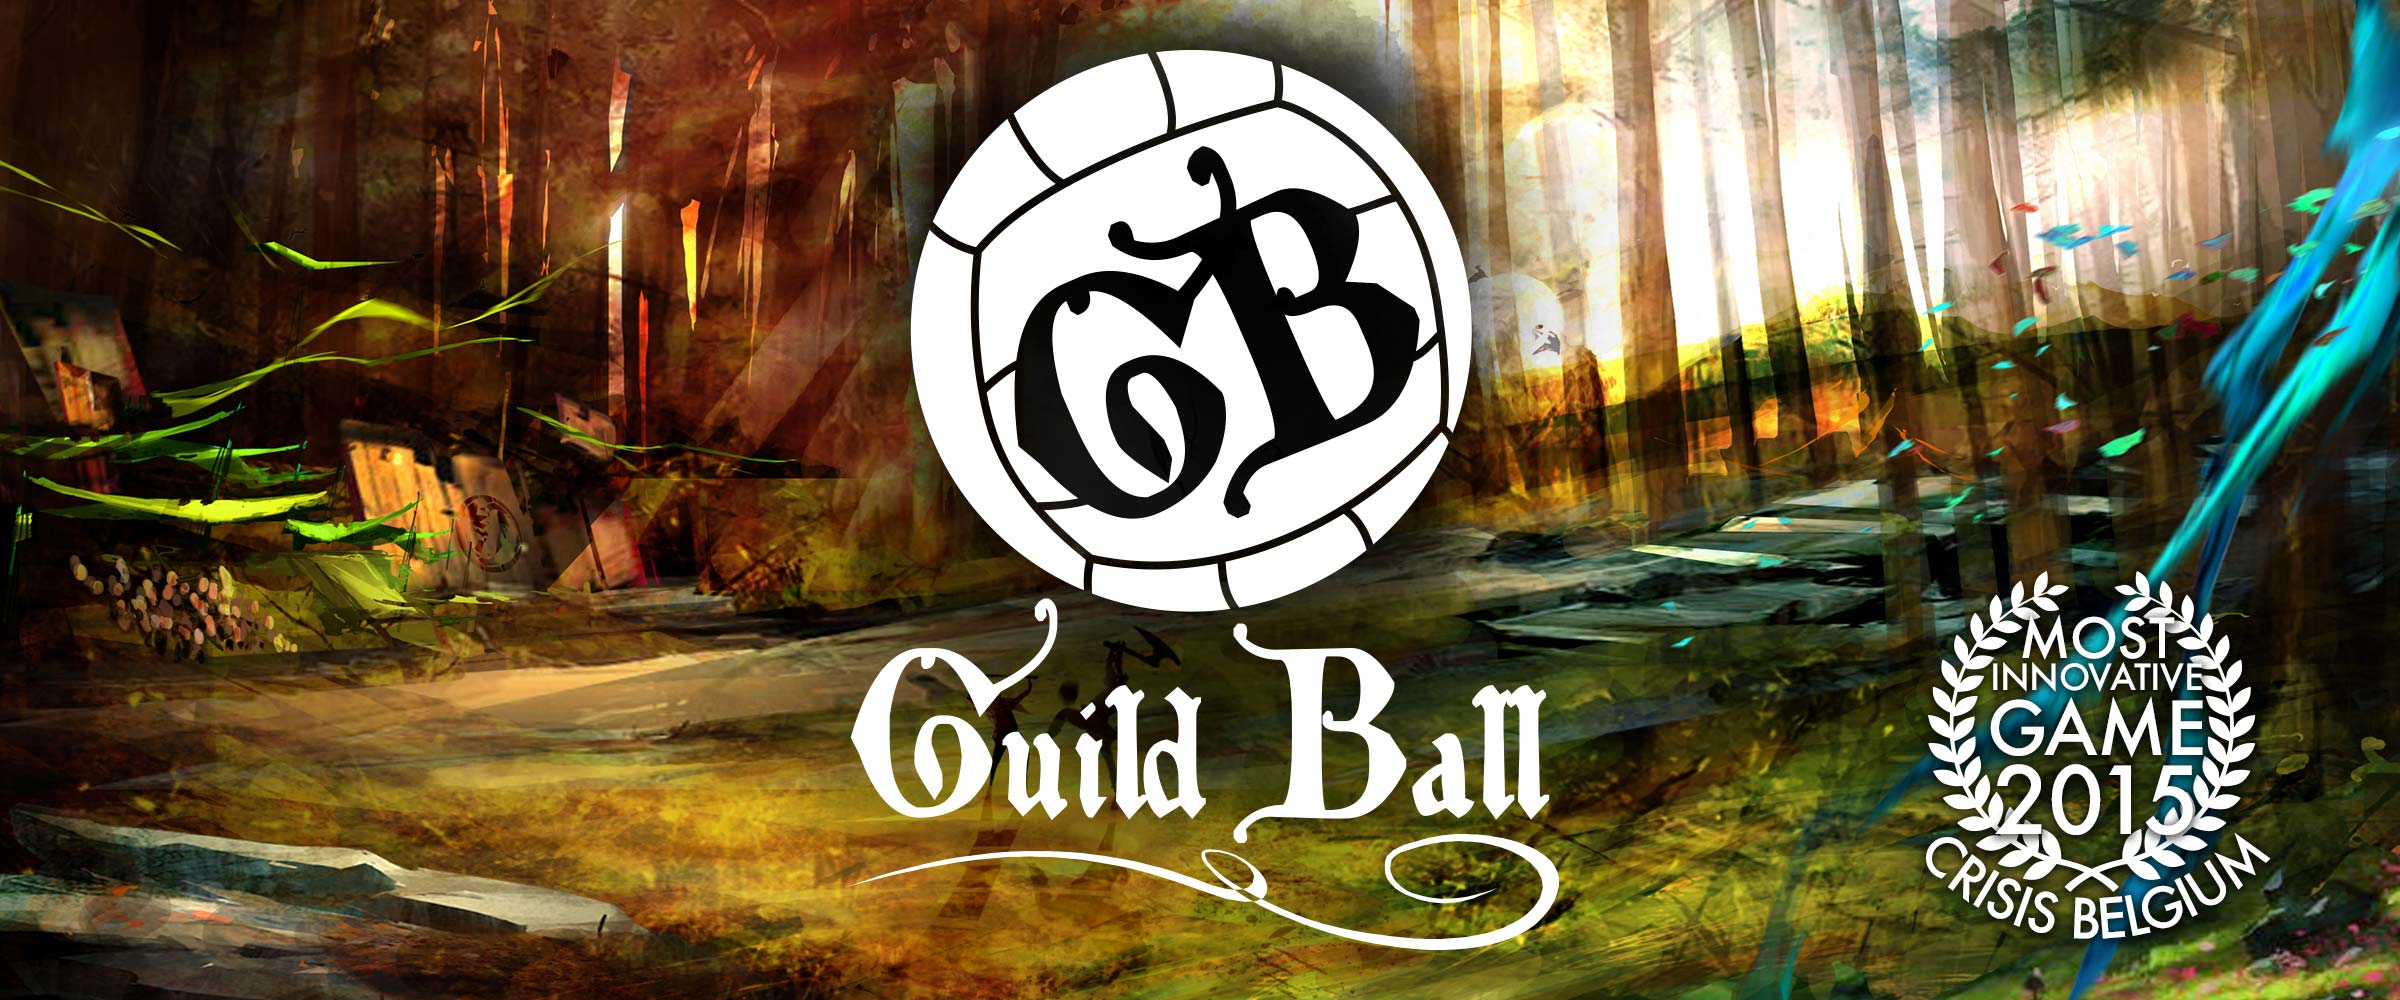 Guild Ball Logo